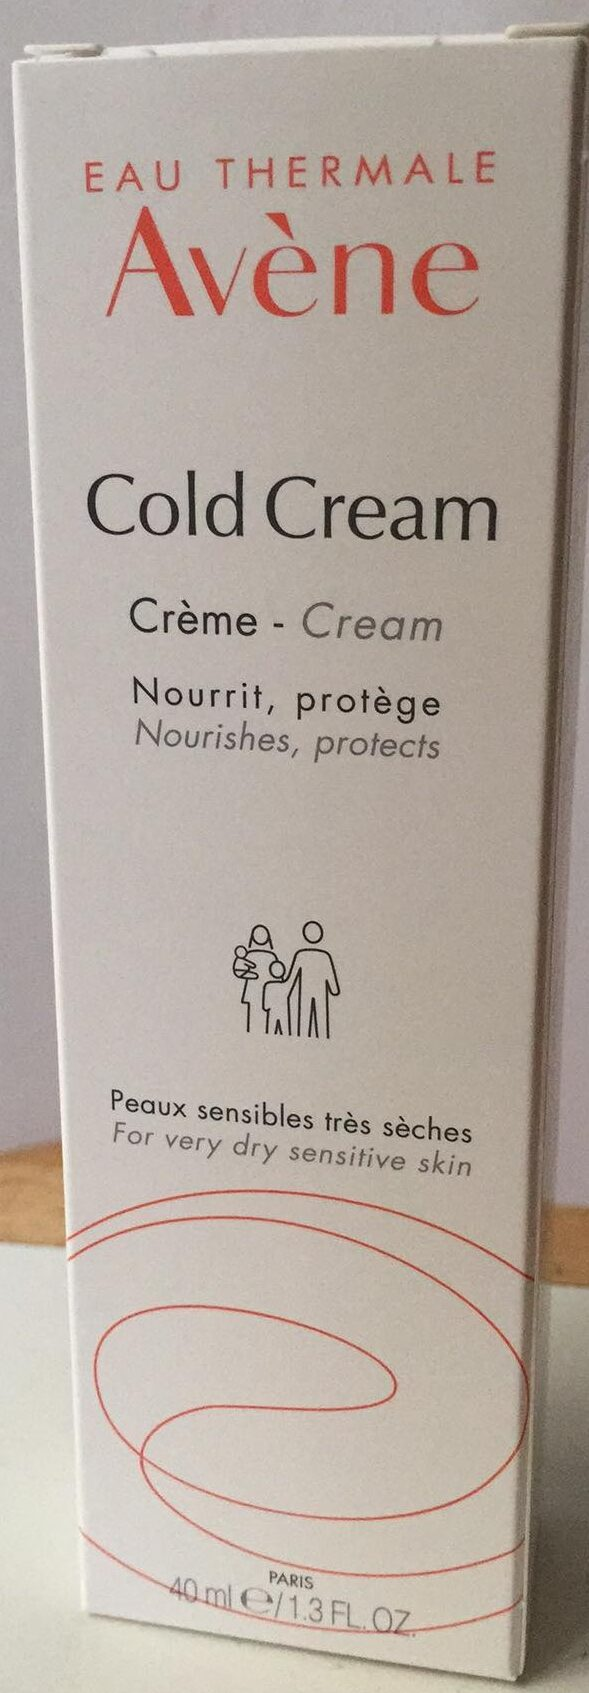 Cold Cream - crème - Product - fr